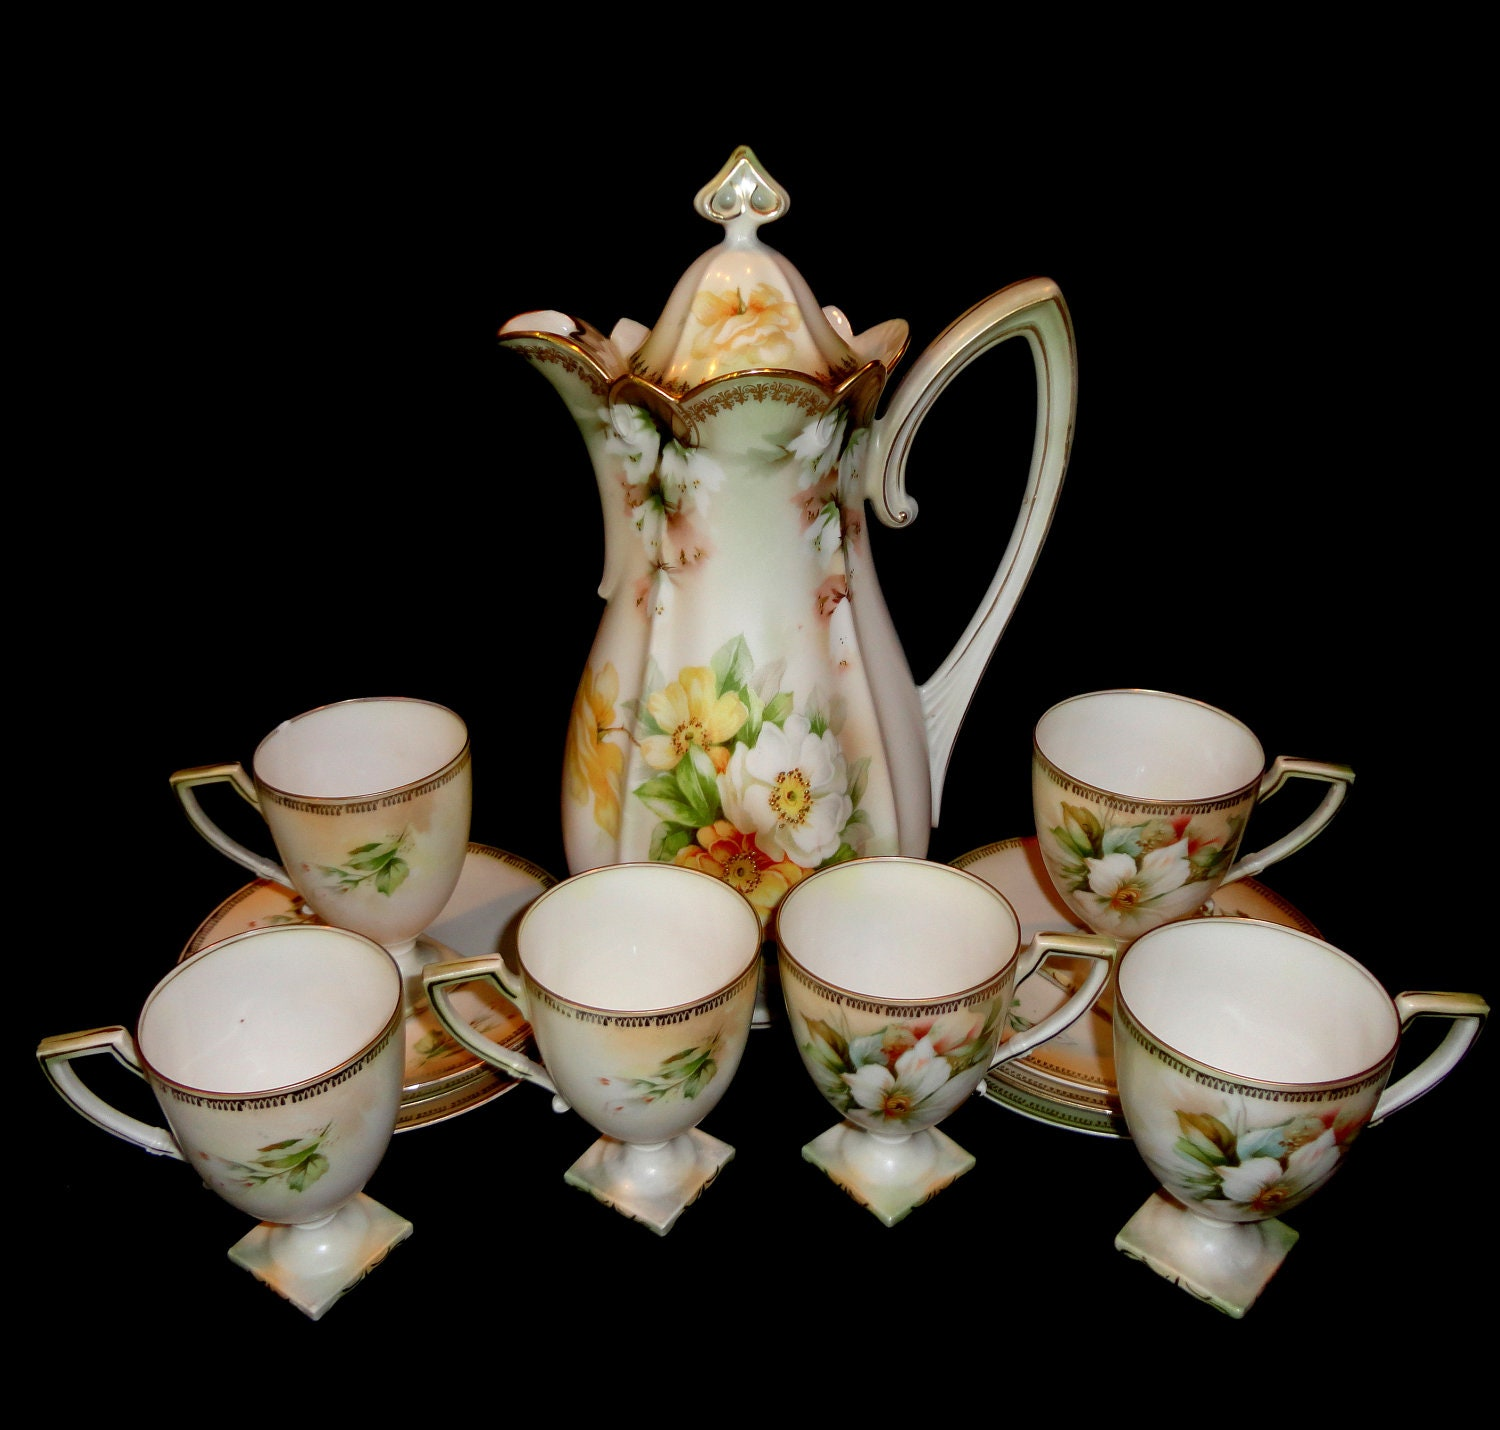 Antique Chocolate Pot By R S Prussia And 6 Demitasse Cups